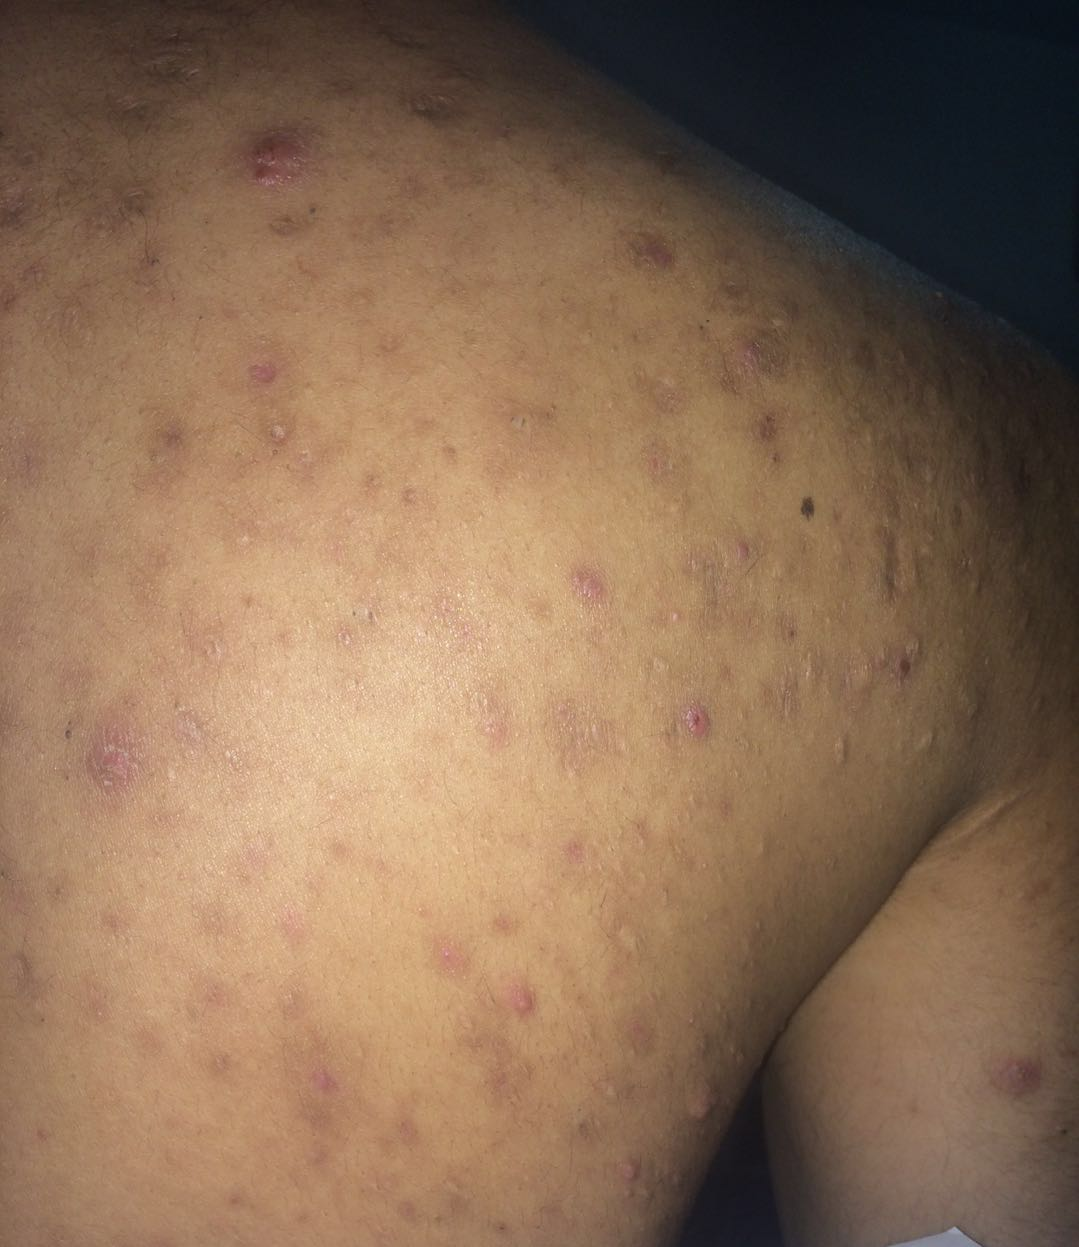 Severe Facial And Back Acne Relapsing After Medication 4 5